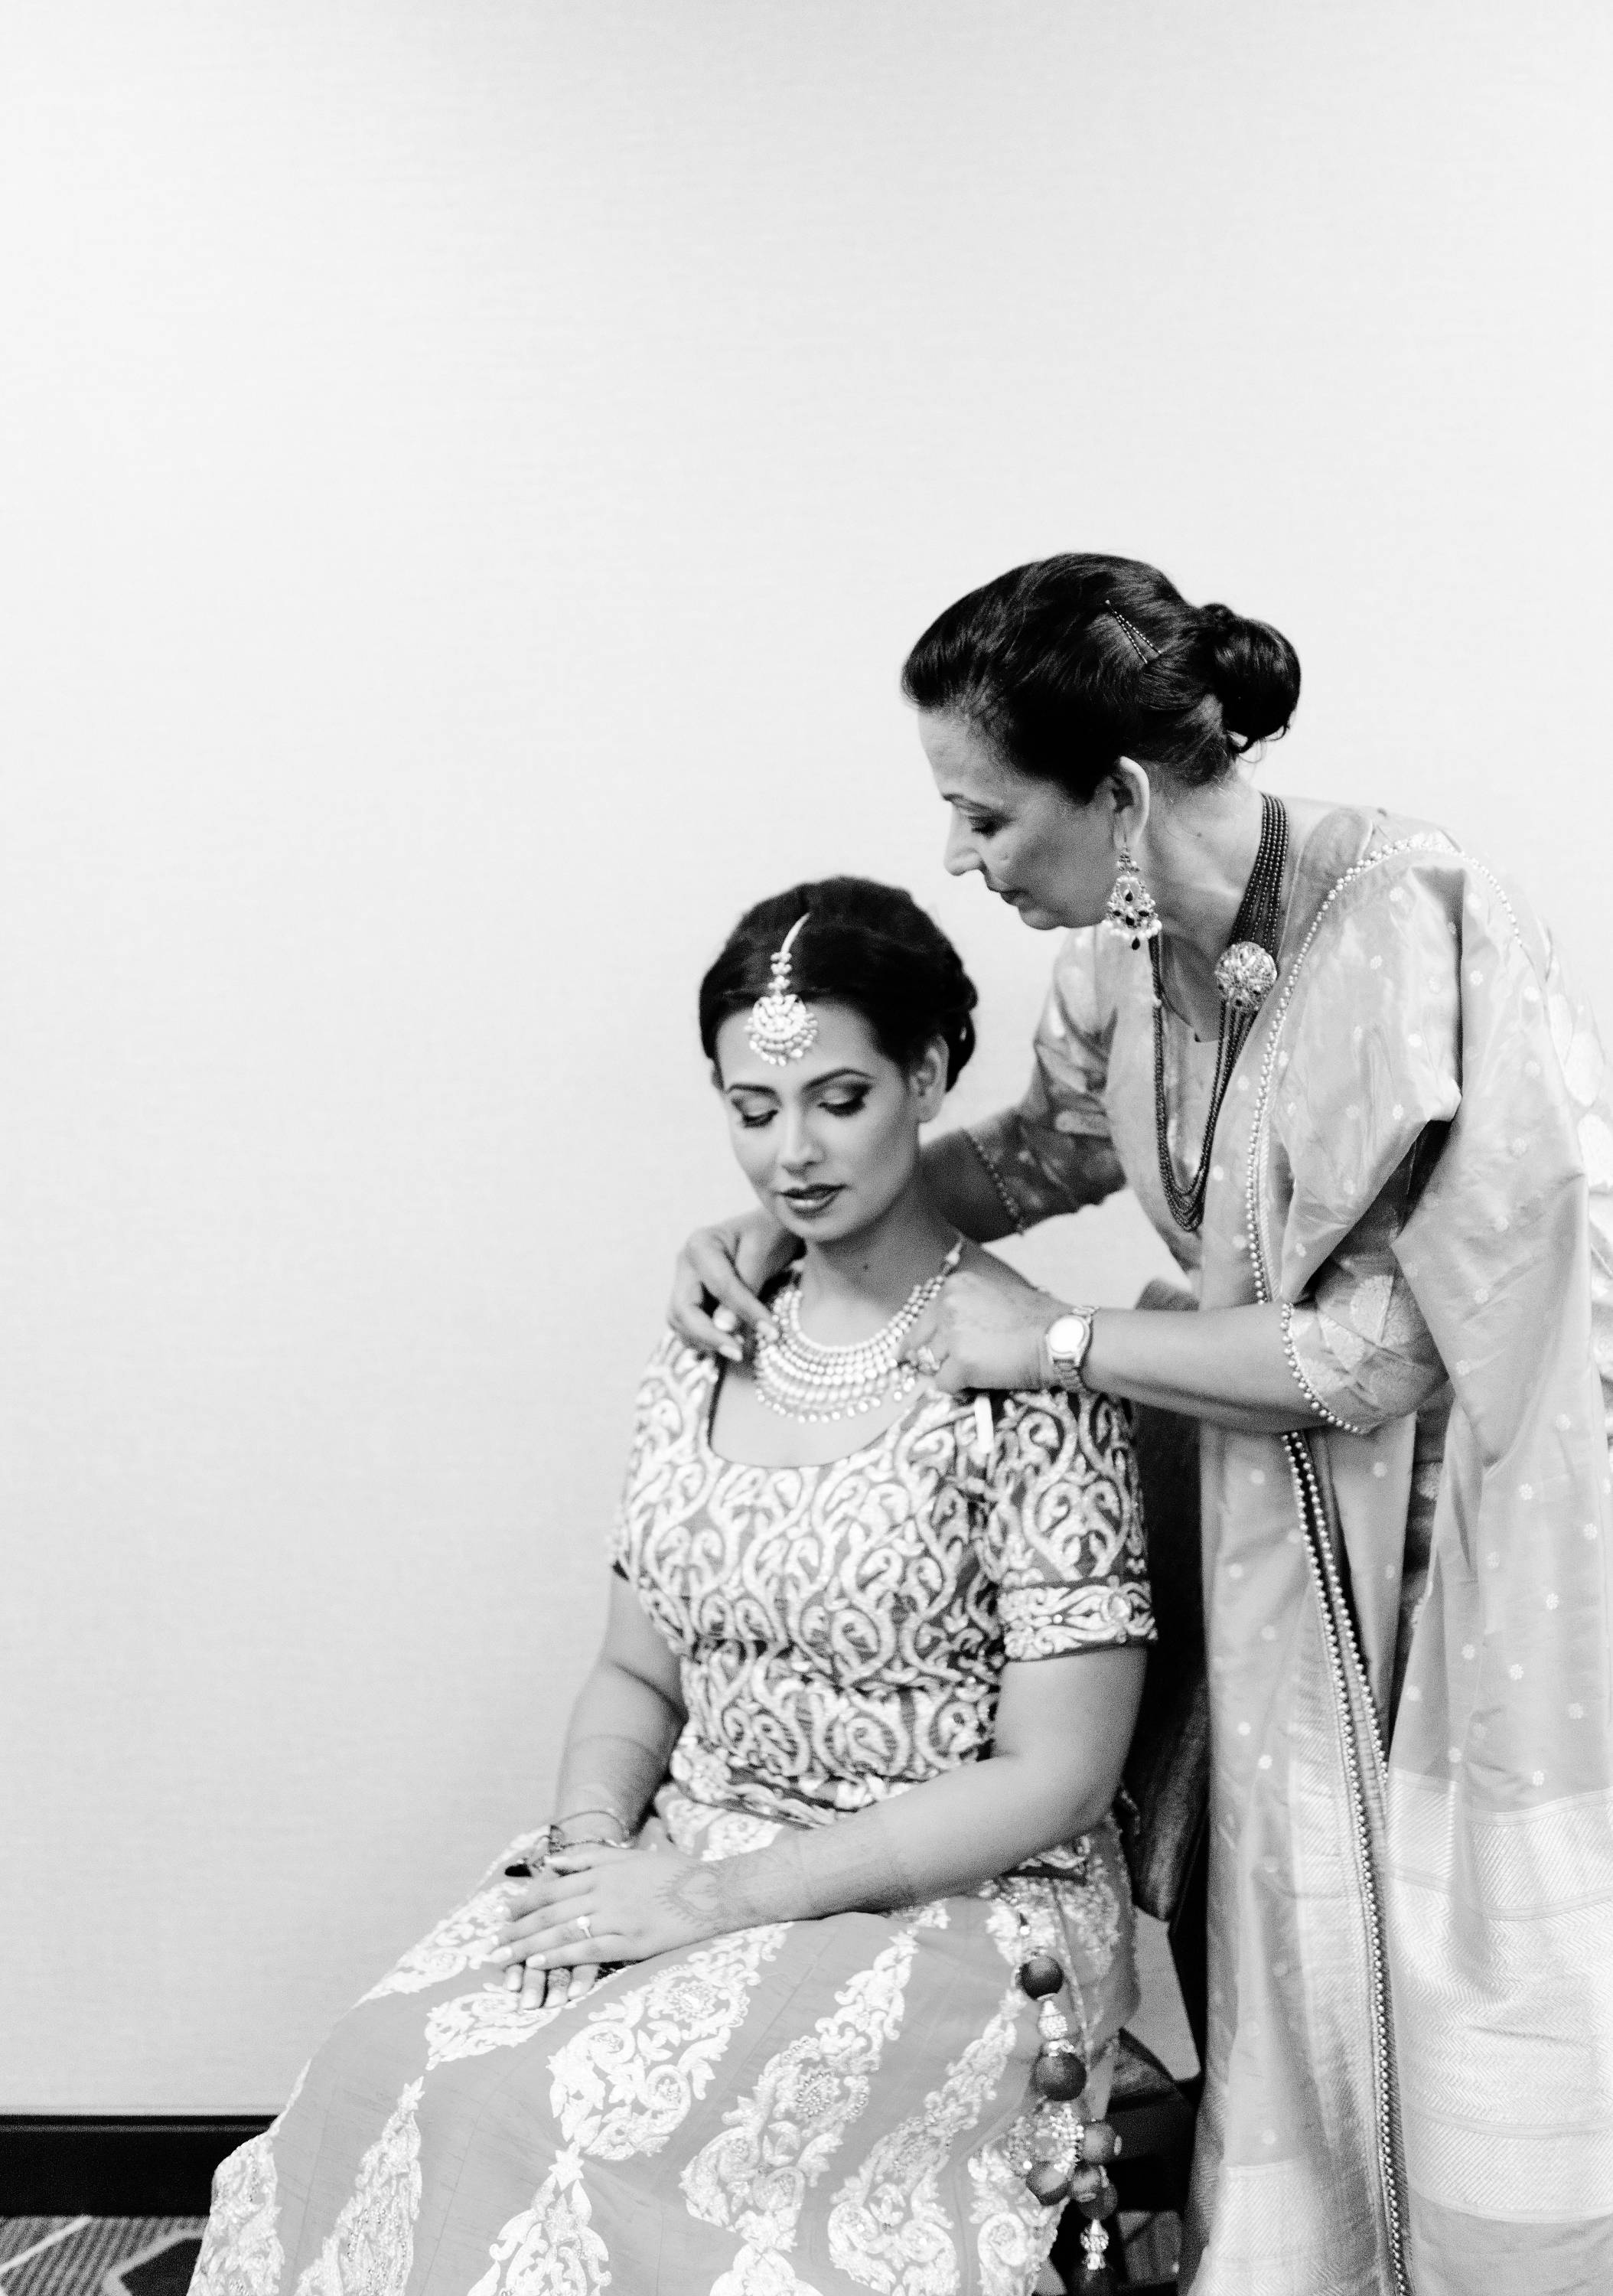 There is nothing more serene and pure to document than the mother & daughter's love.